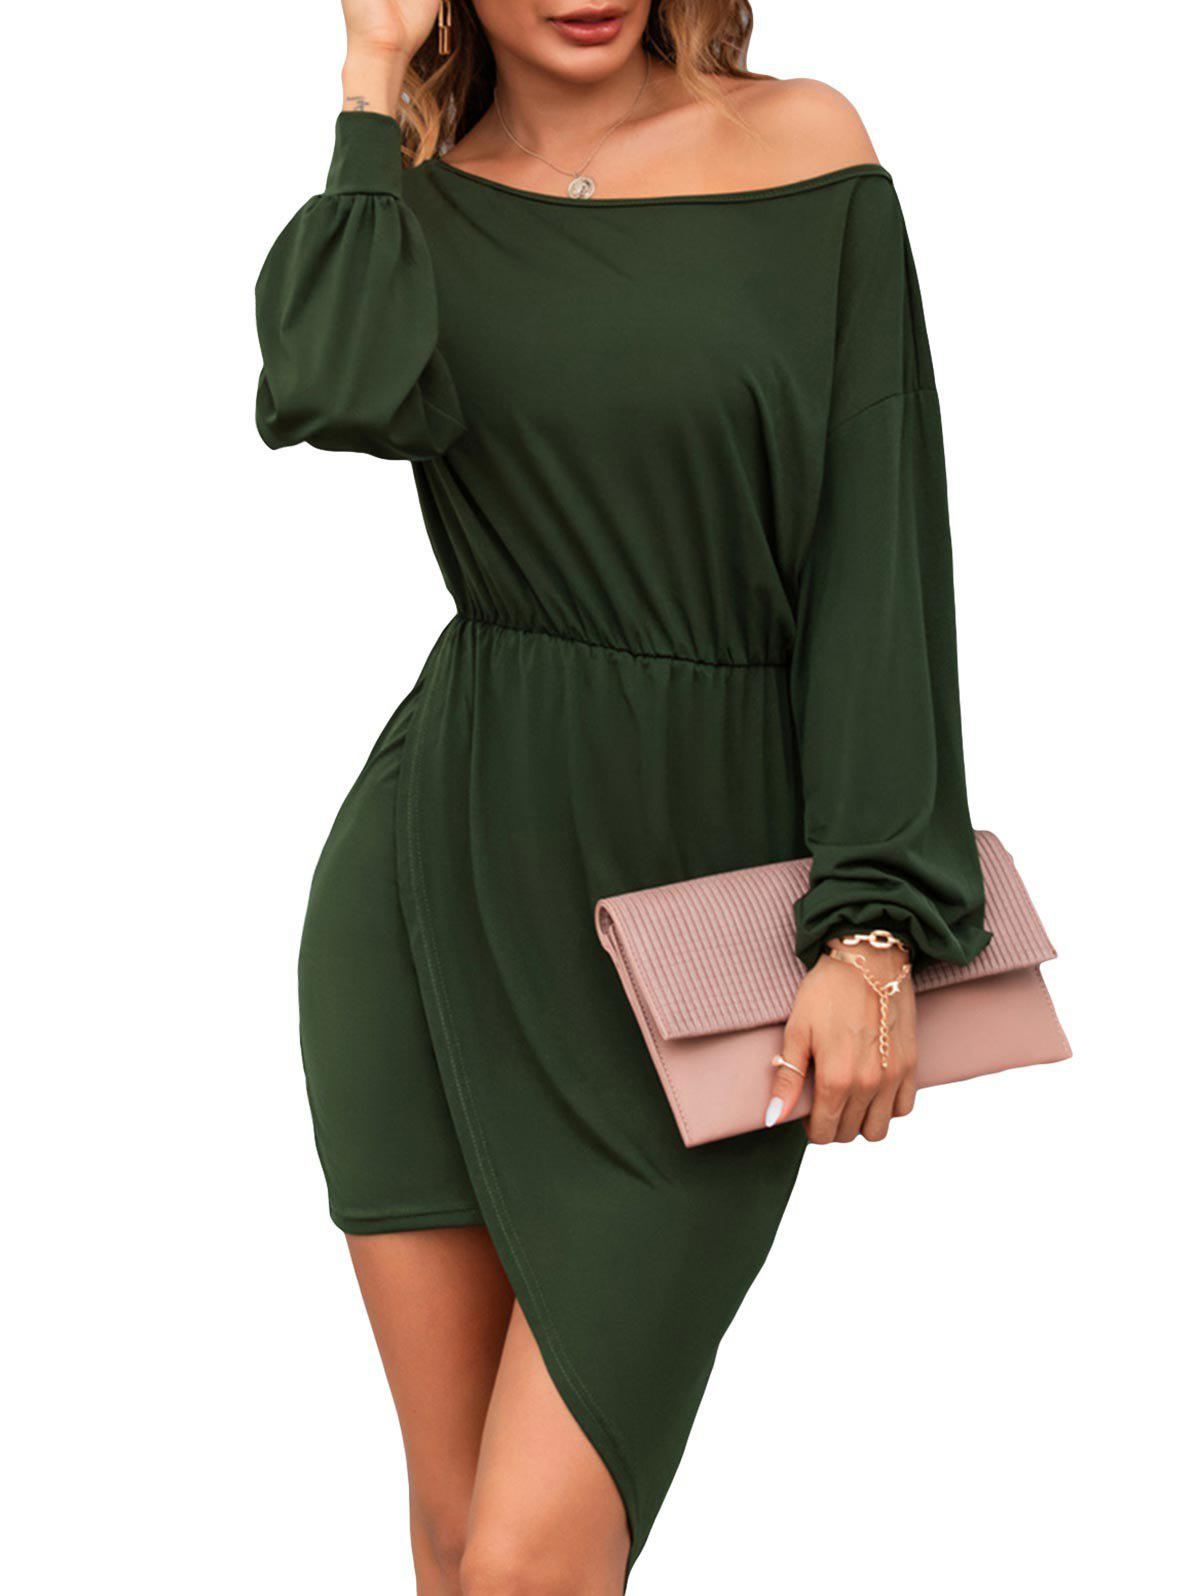 Skew Collar Long Sleeve Asymmetrical Dress - DEEP GREEN S